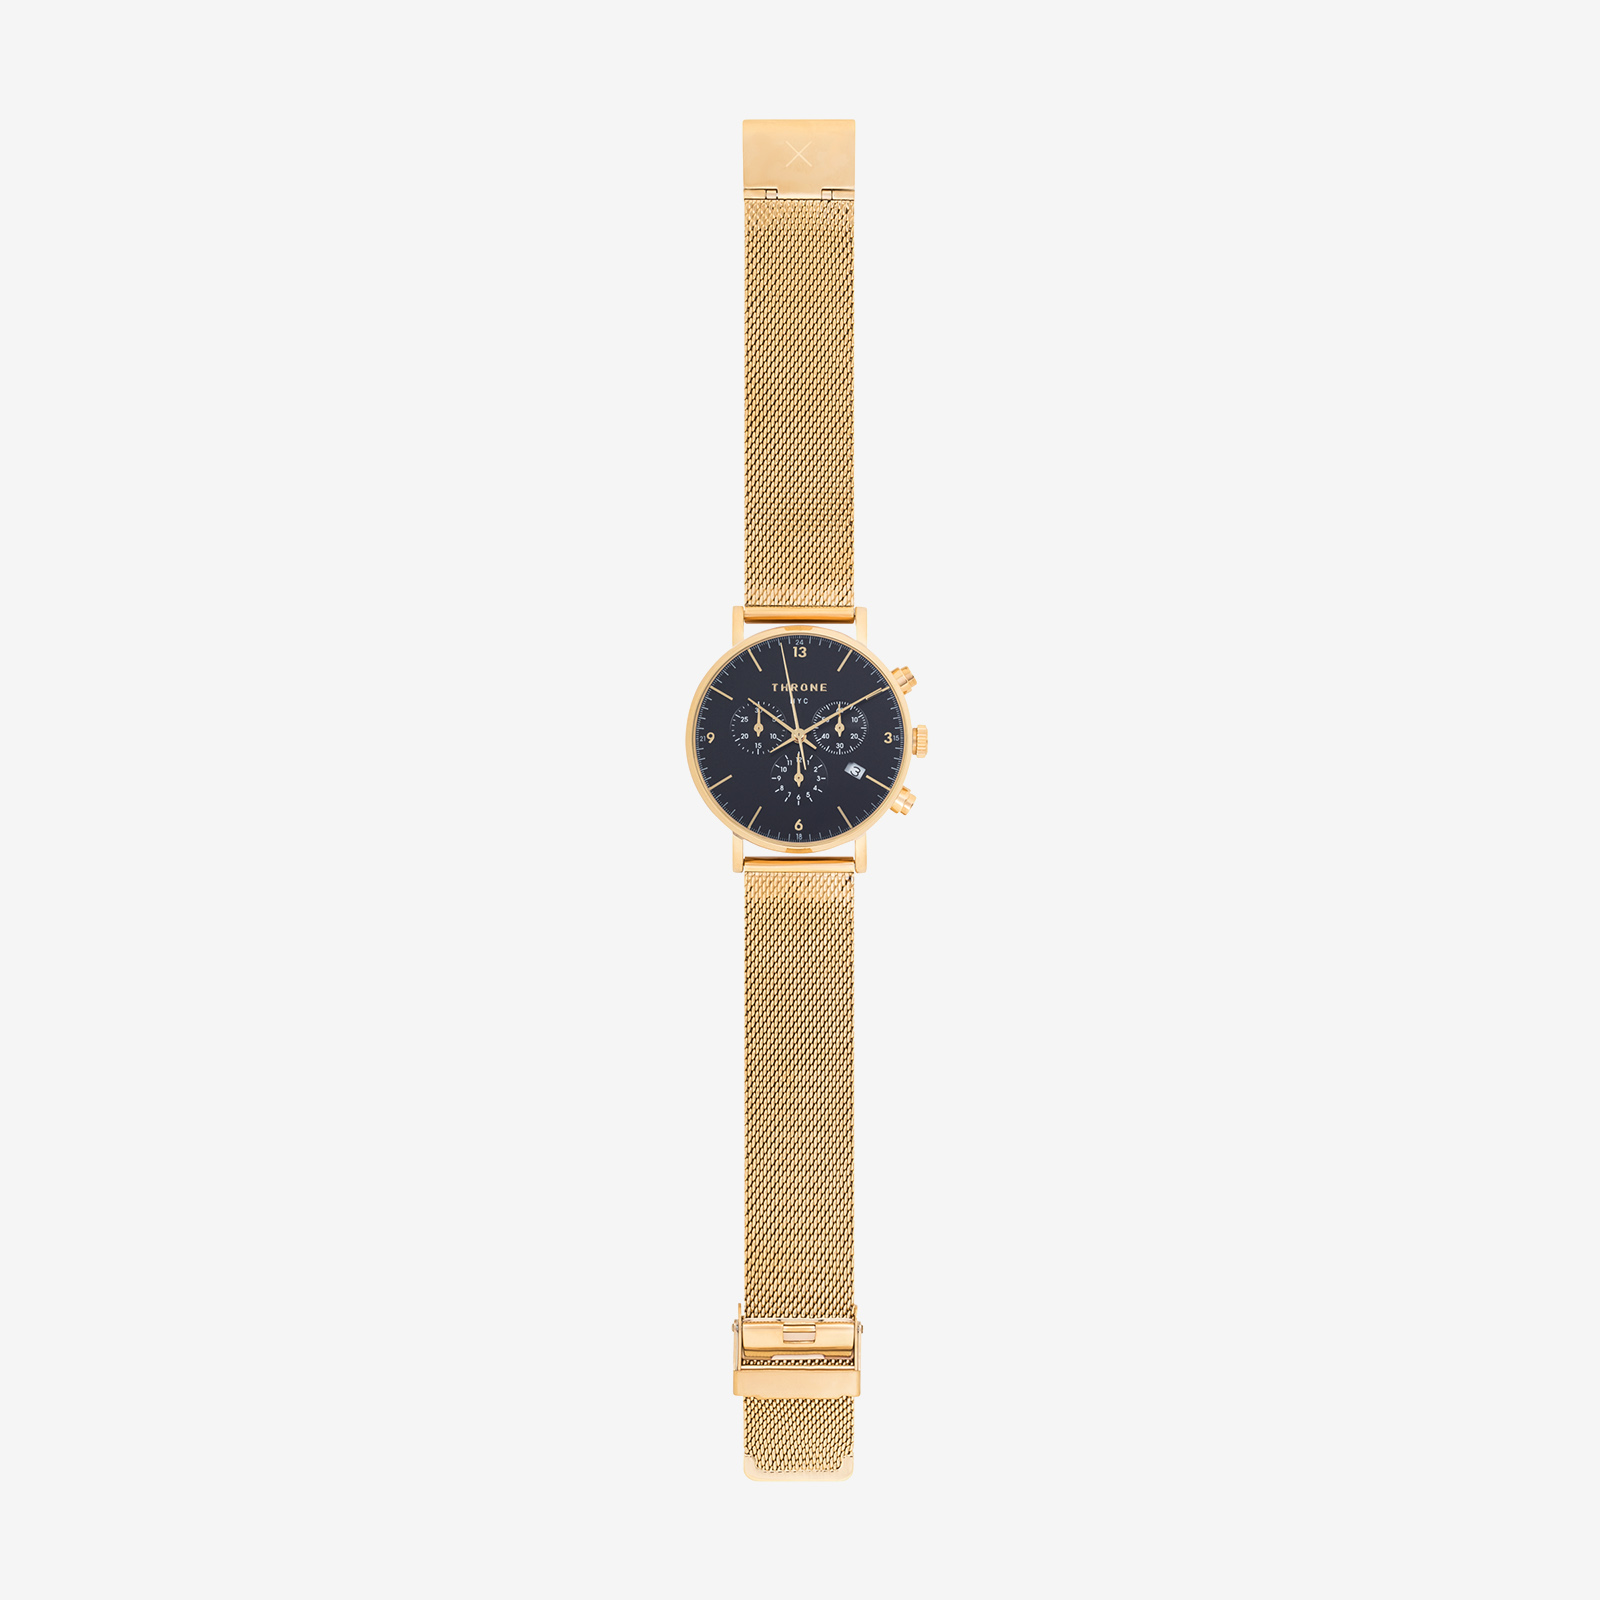 Golden watch product image